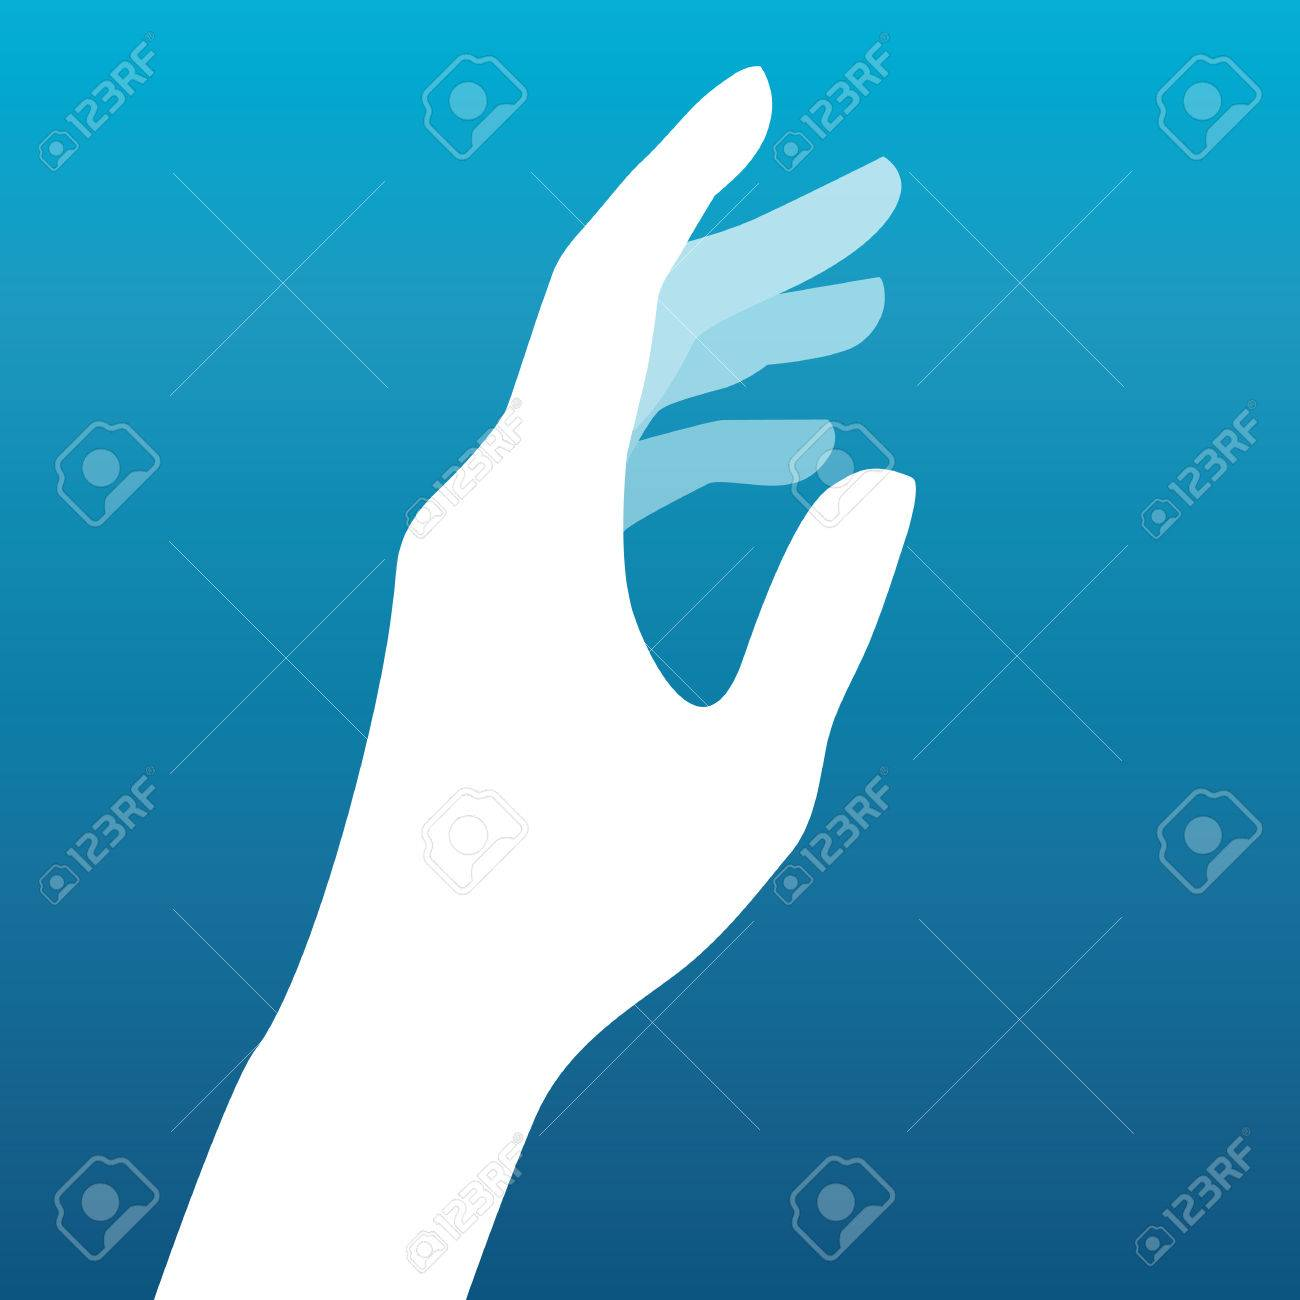 Lady hand silhouette vector - 50998980